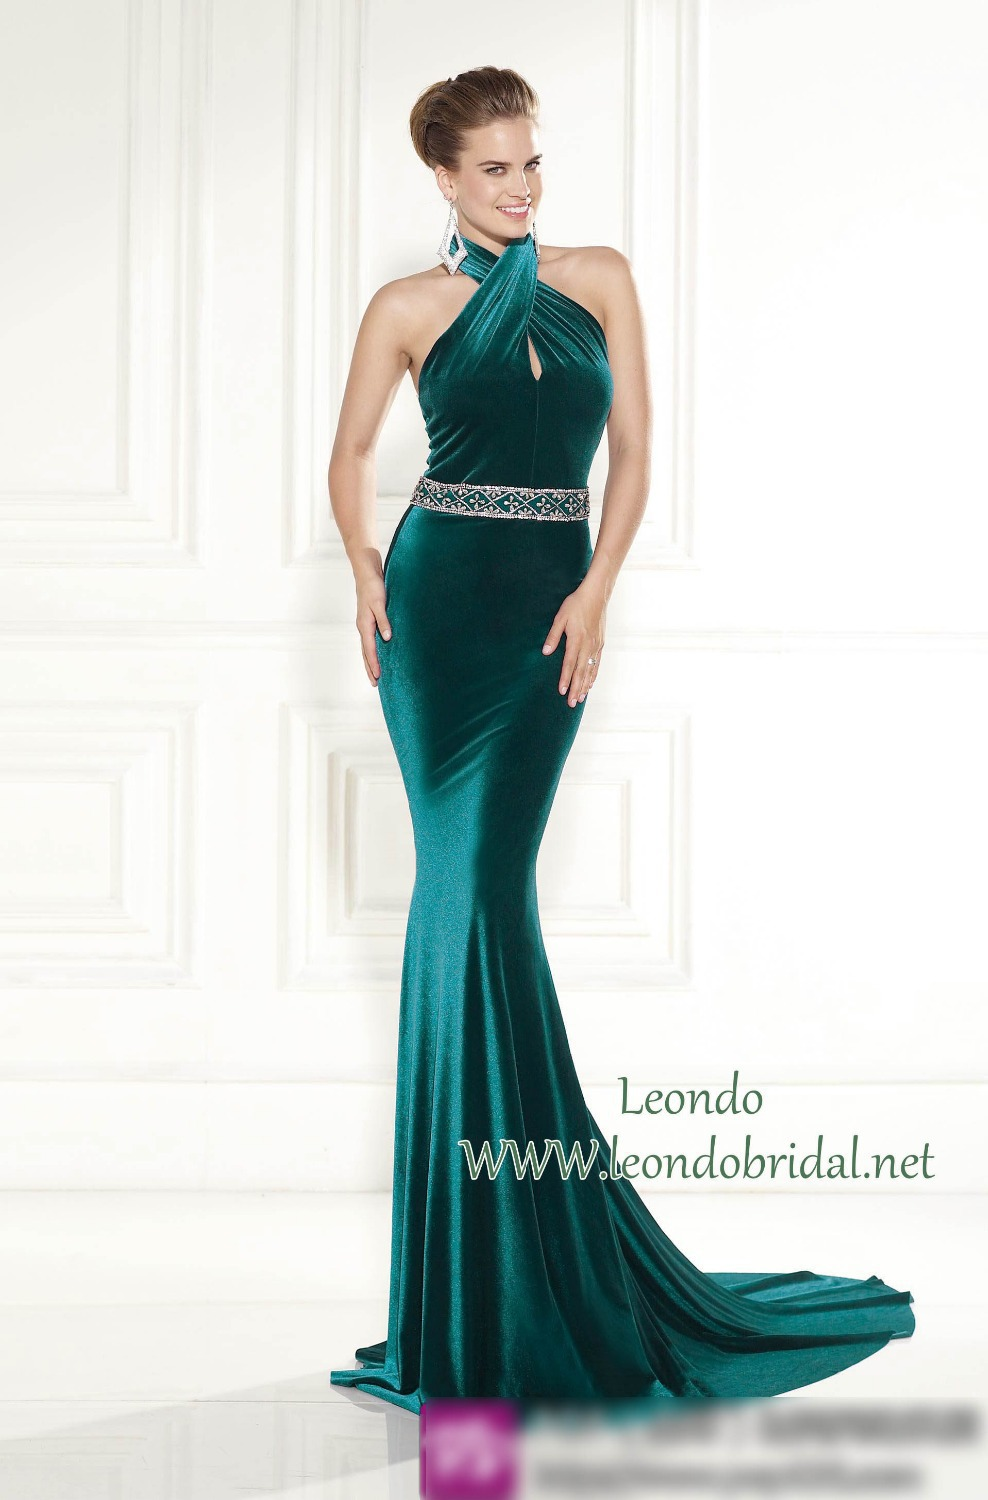 Aliexpress.com : Buy Tarik Ediz Green Prom Dresses 2015 New ...